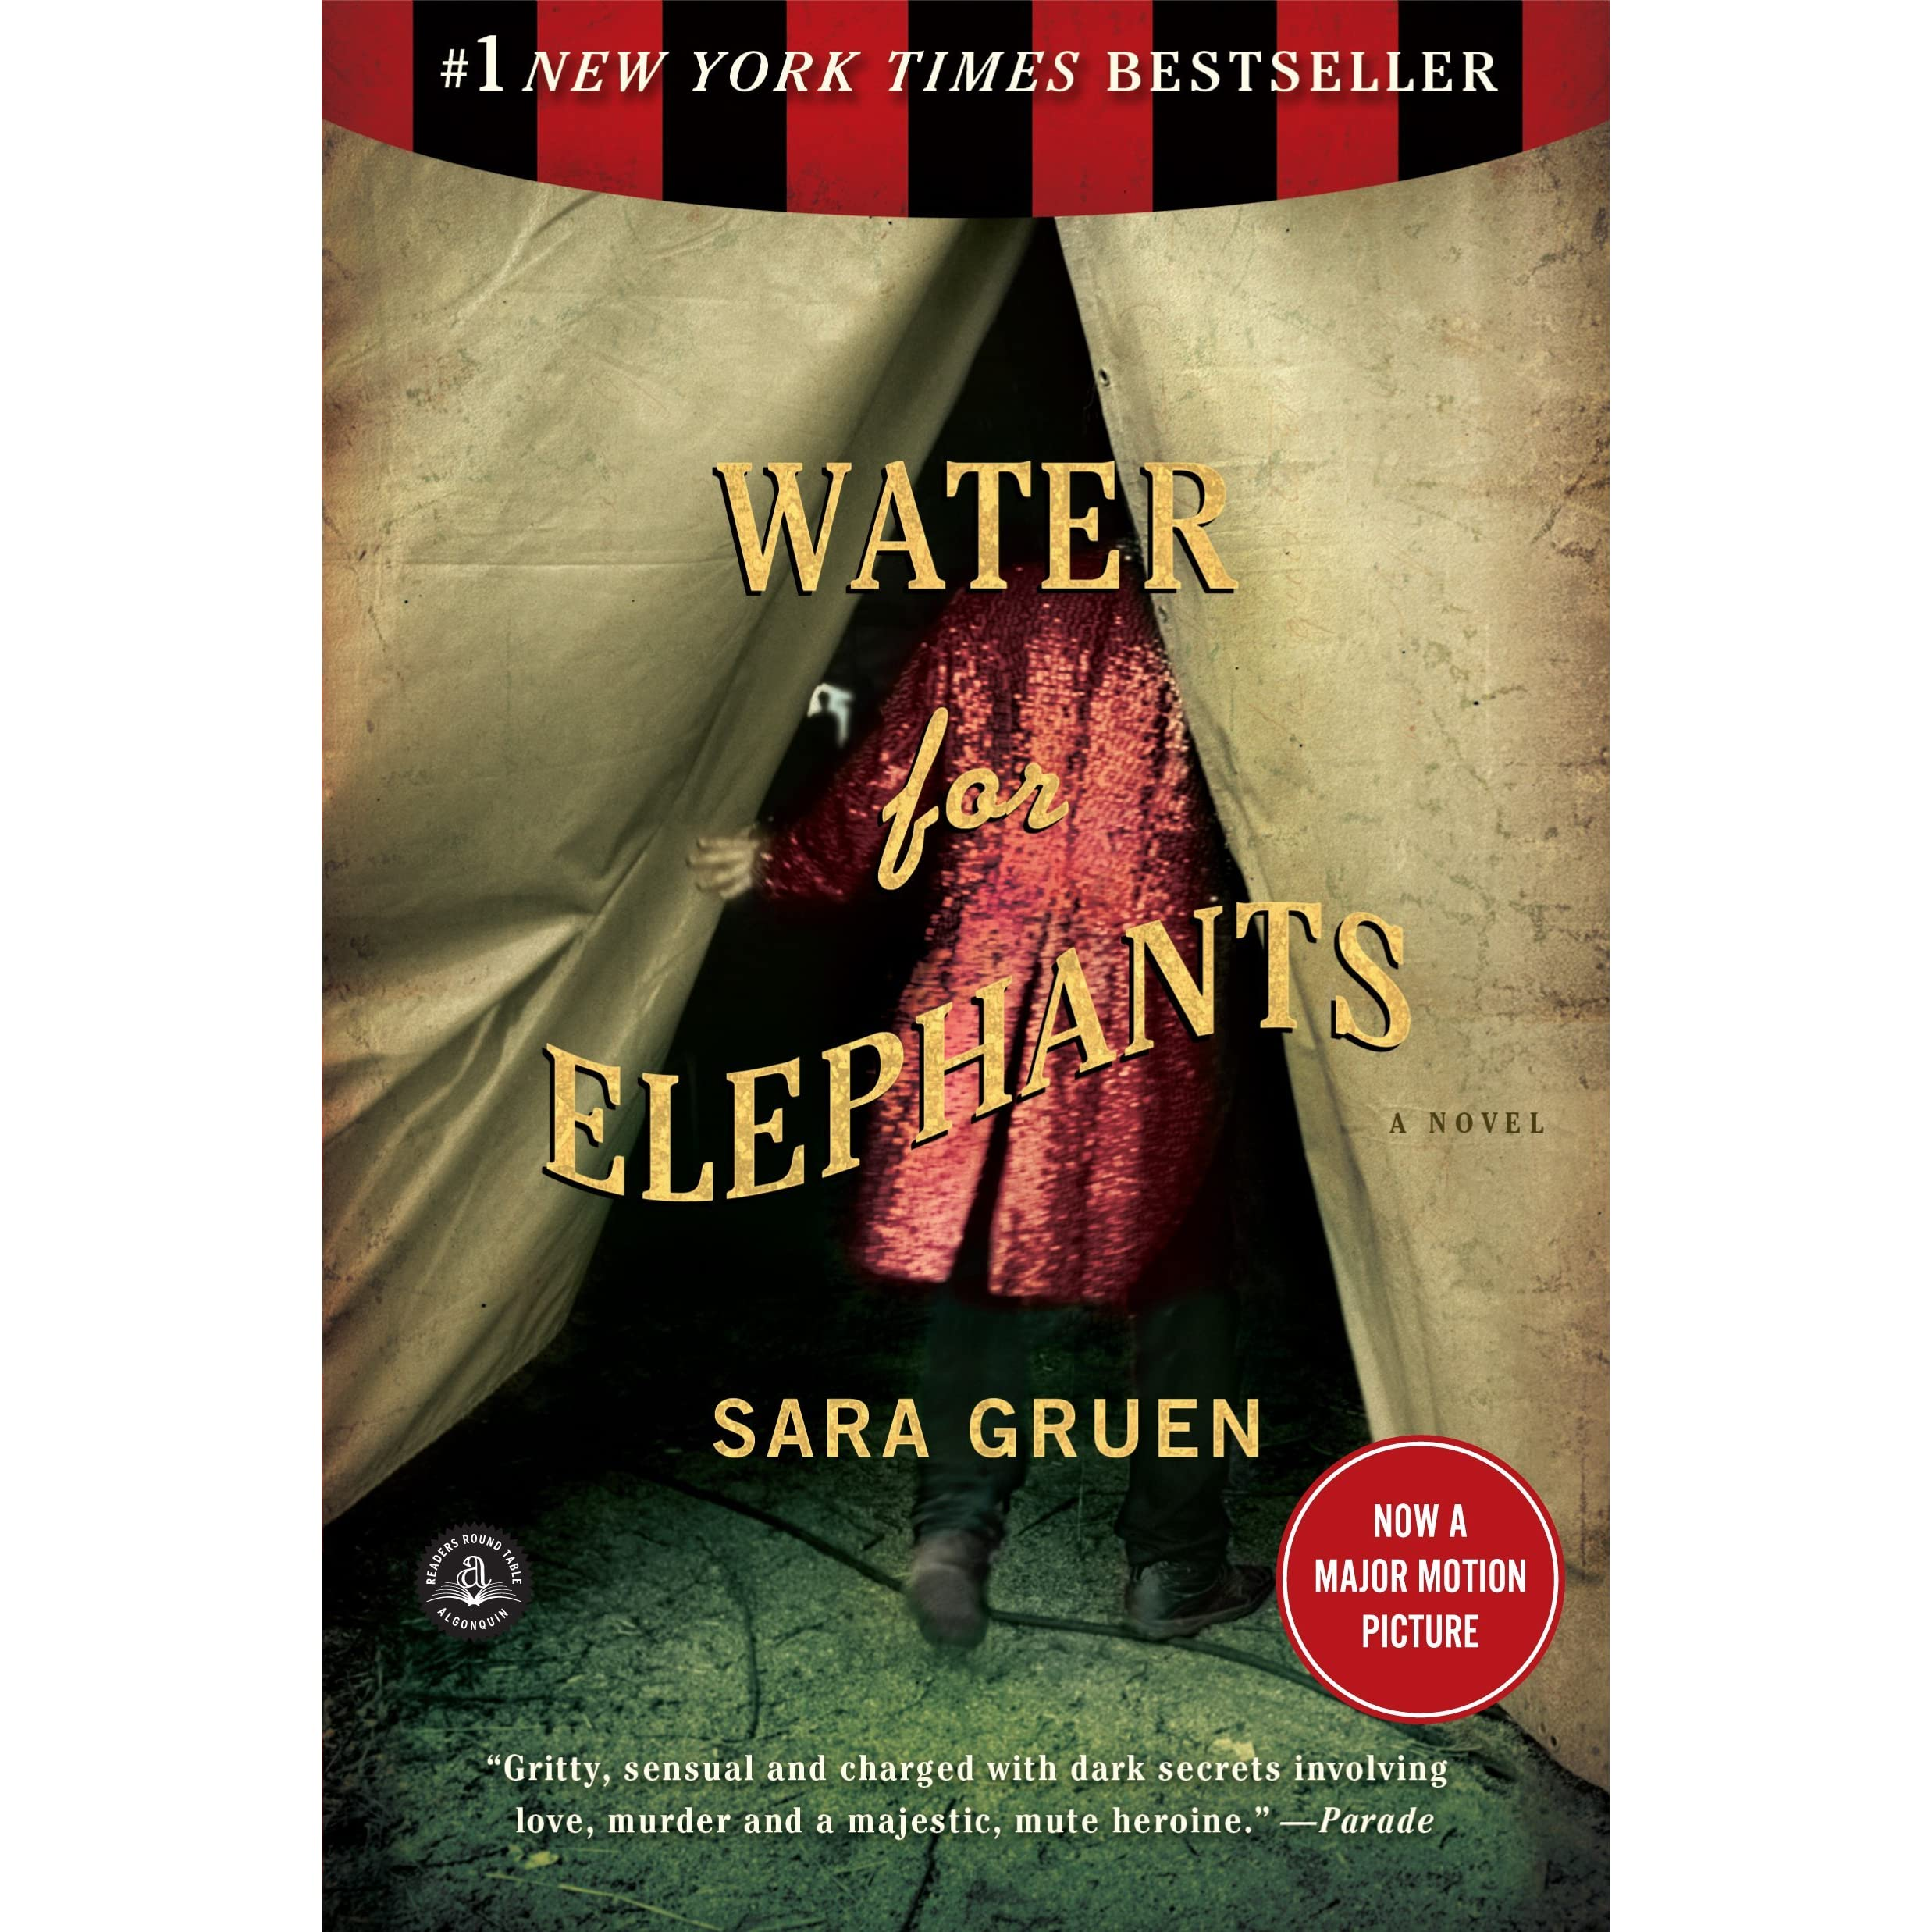 How To Make A Book Cover Look Old And Worn ~ Water for elephants by sara gruen